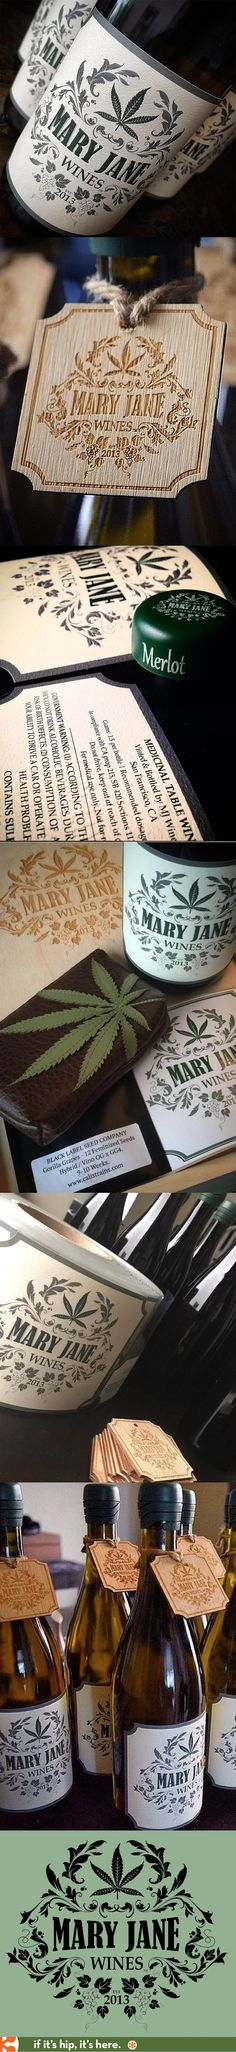 Nice logo, labels and branding for Mary Jane cannabis-infused table wines.